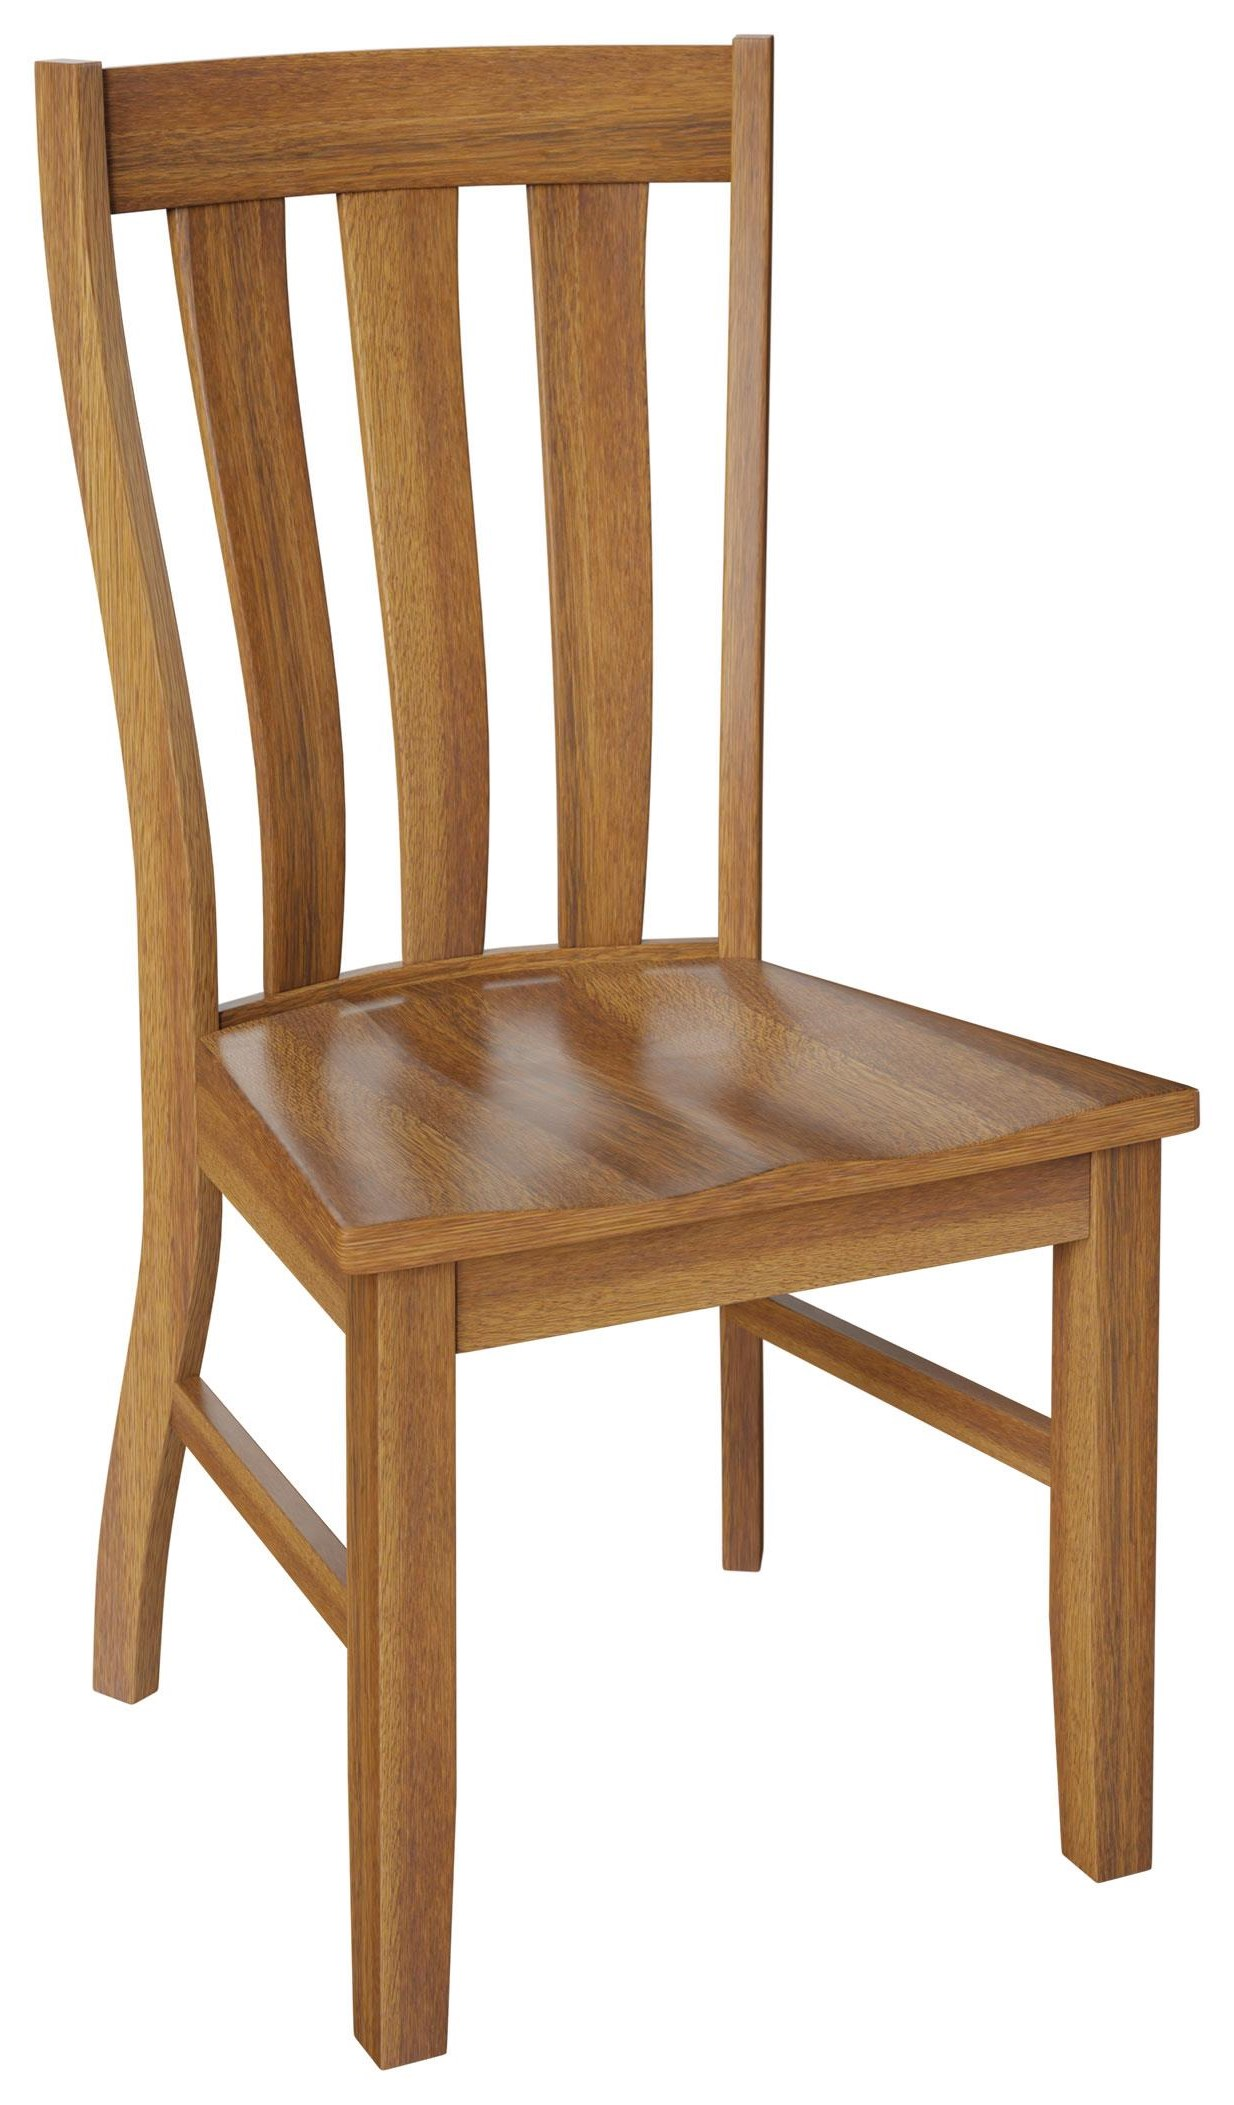 Medford Side Chair by Wengerd Wood Products at Wayside Furniture